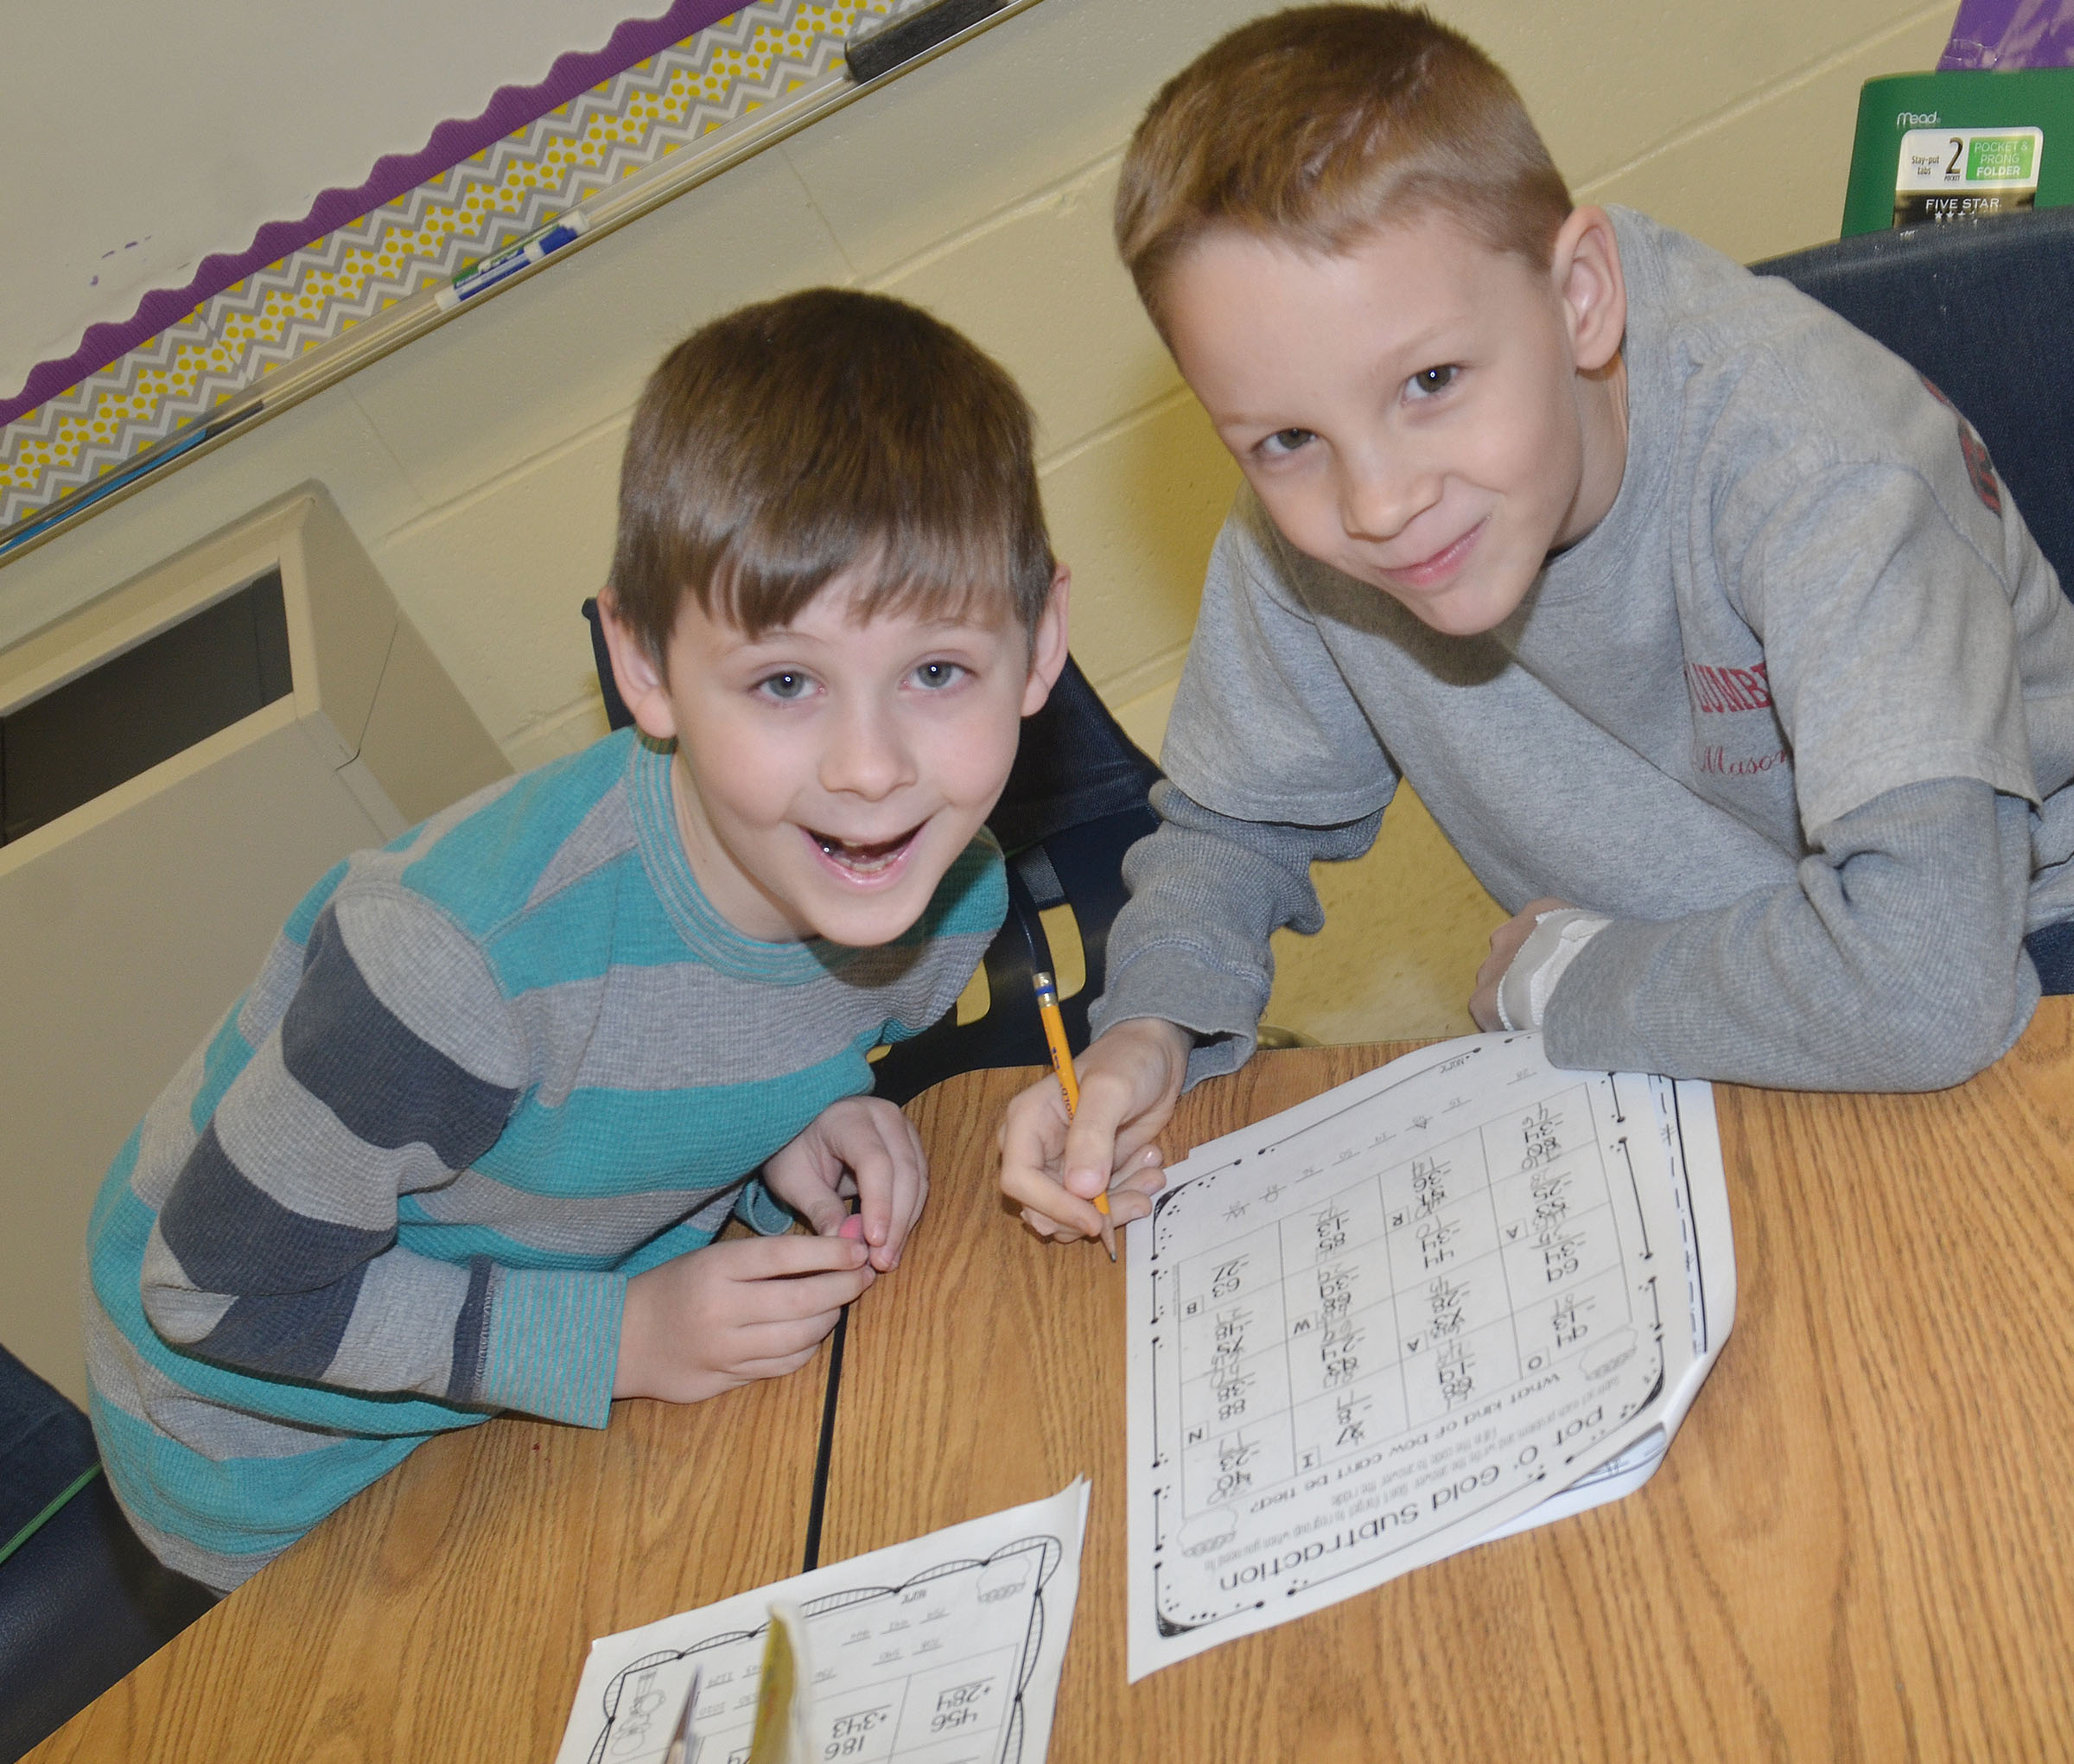 CES second-graders Ryan Tungate, at left, and Braxton Agee smile as they work a St. Patrick's Day math problem together.